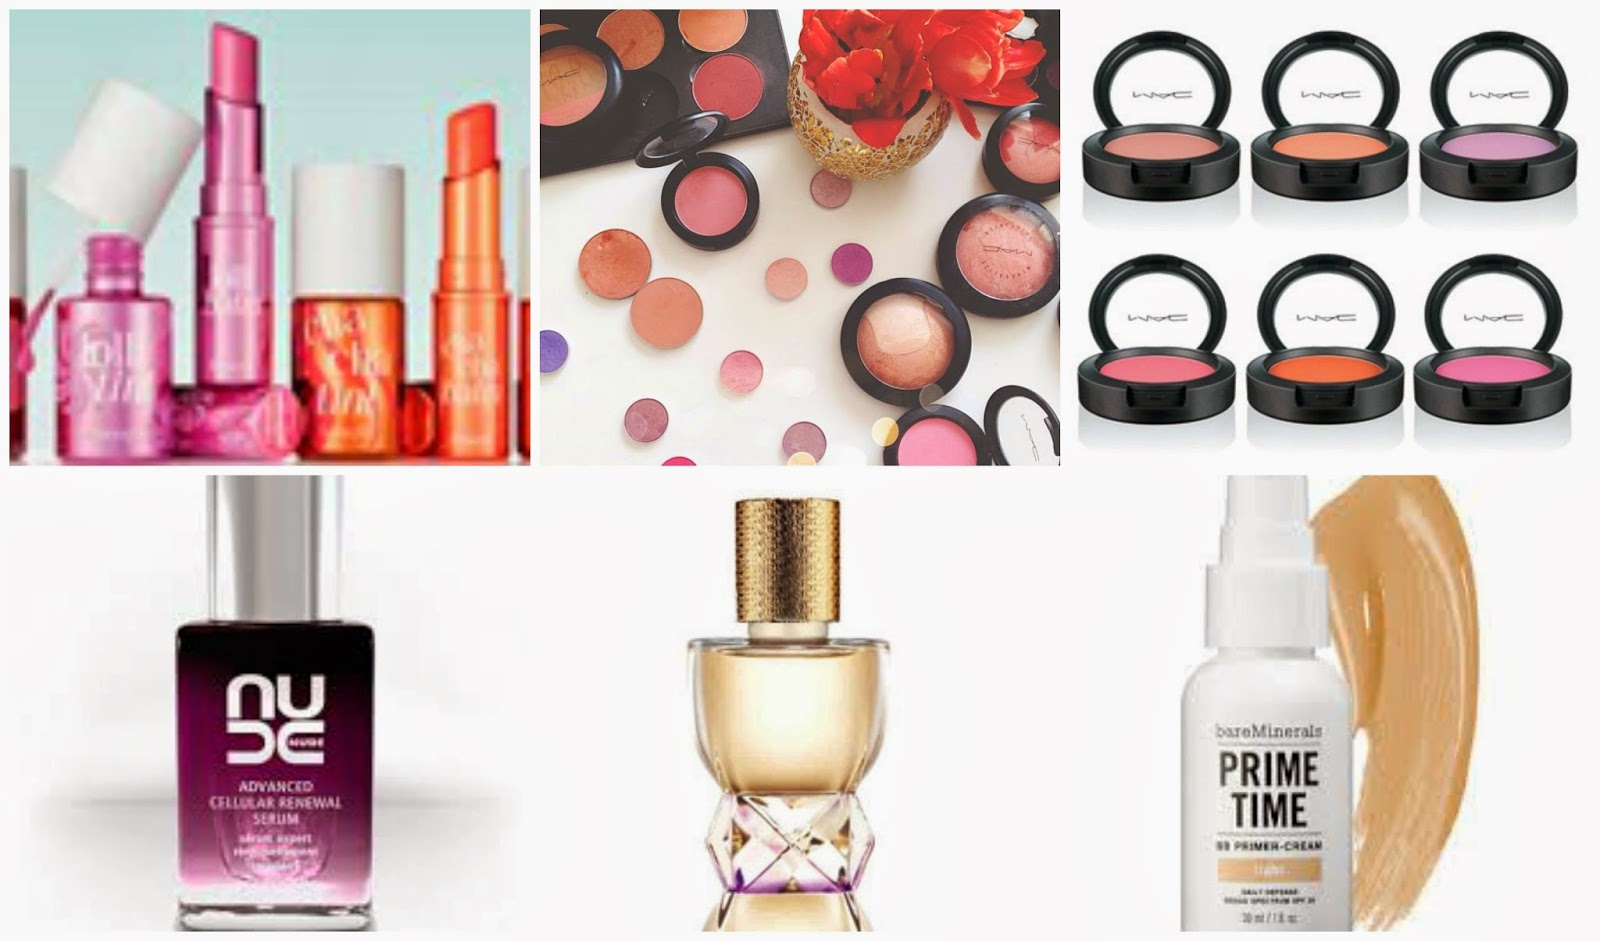 The Daily Beauty Report (25.03.14)